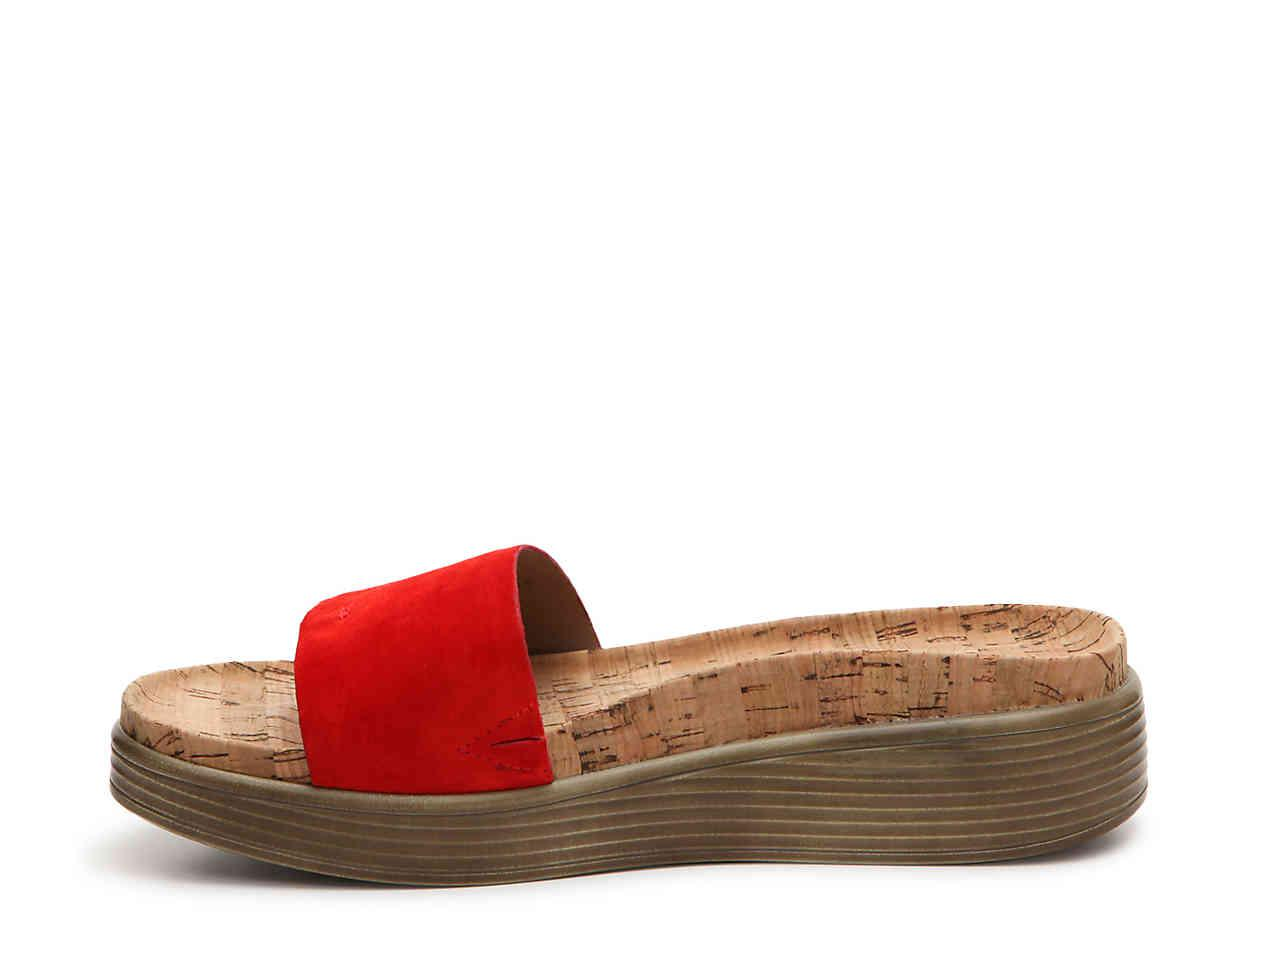 ef4c681df45c Lyst - Donald J Pliner Fiji Wedge Sandal in Red